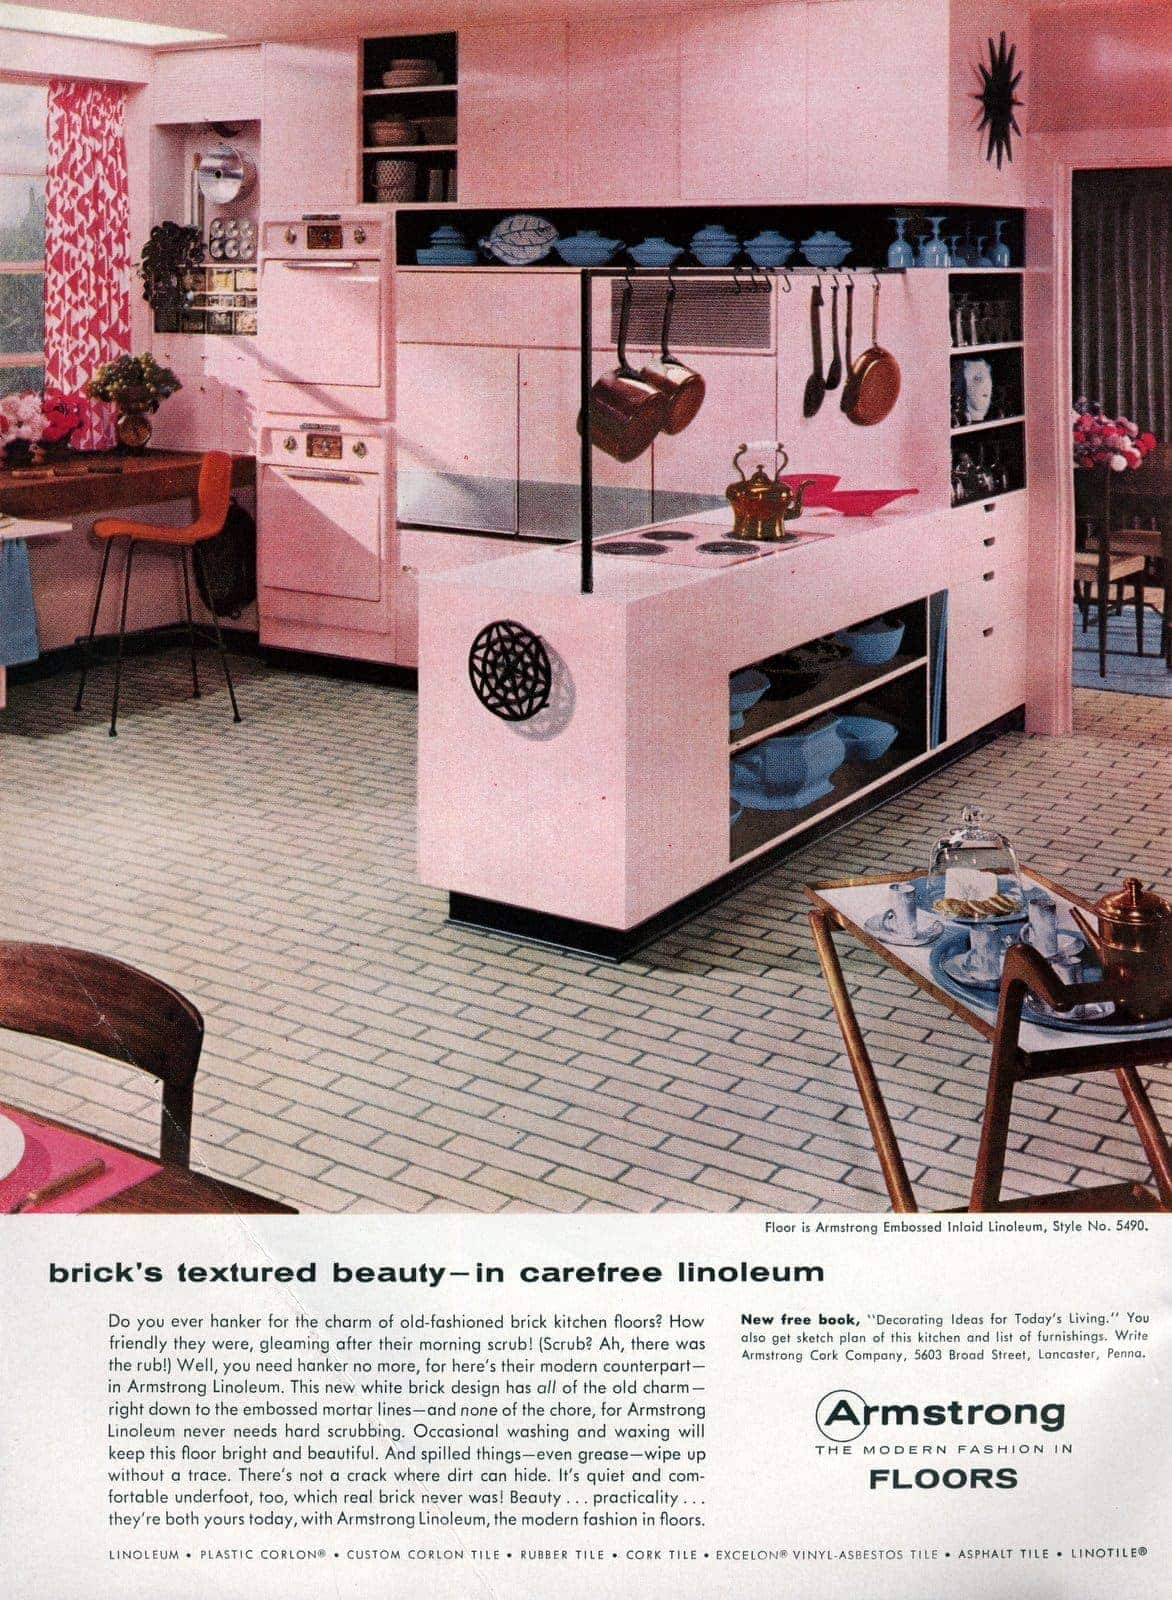 A White Brick Linoleum Floor For Your Pink Kitchen Why Not It Was - Retro-kitchen-design-you-never-seen-before